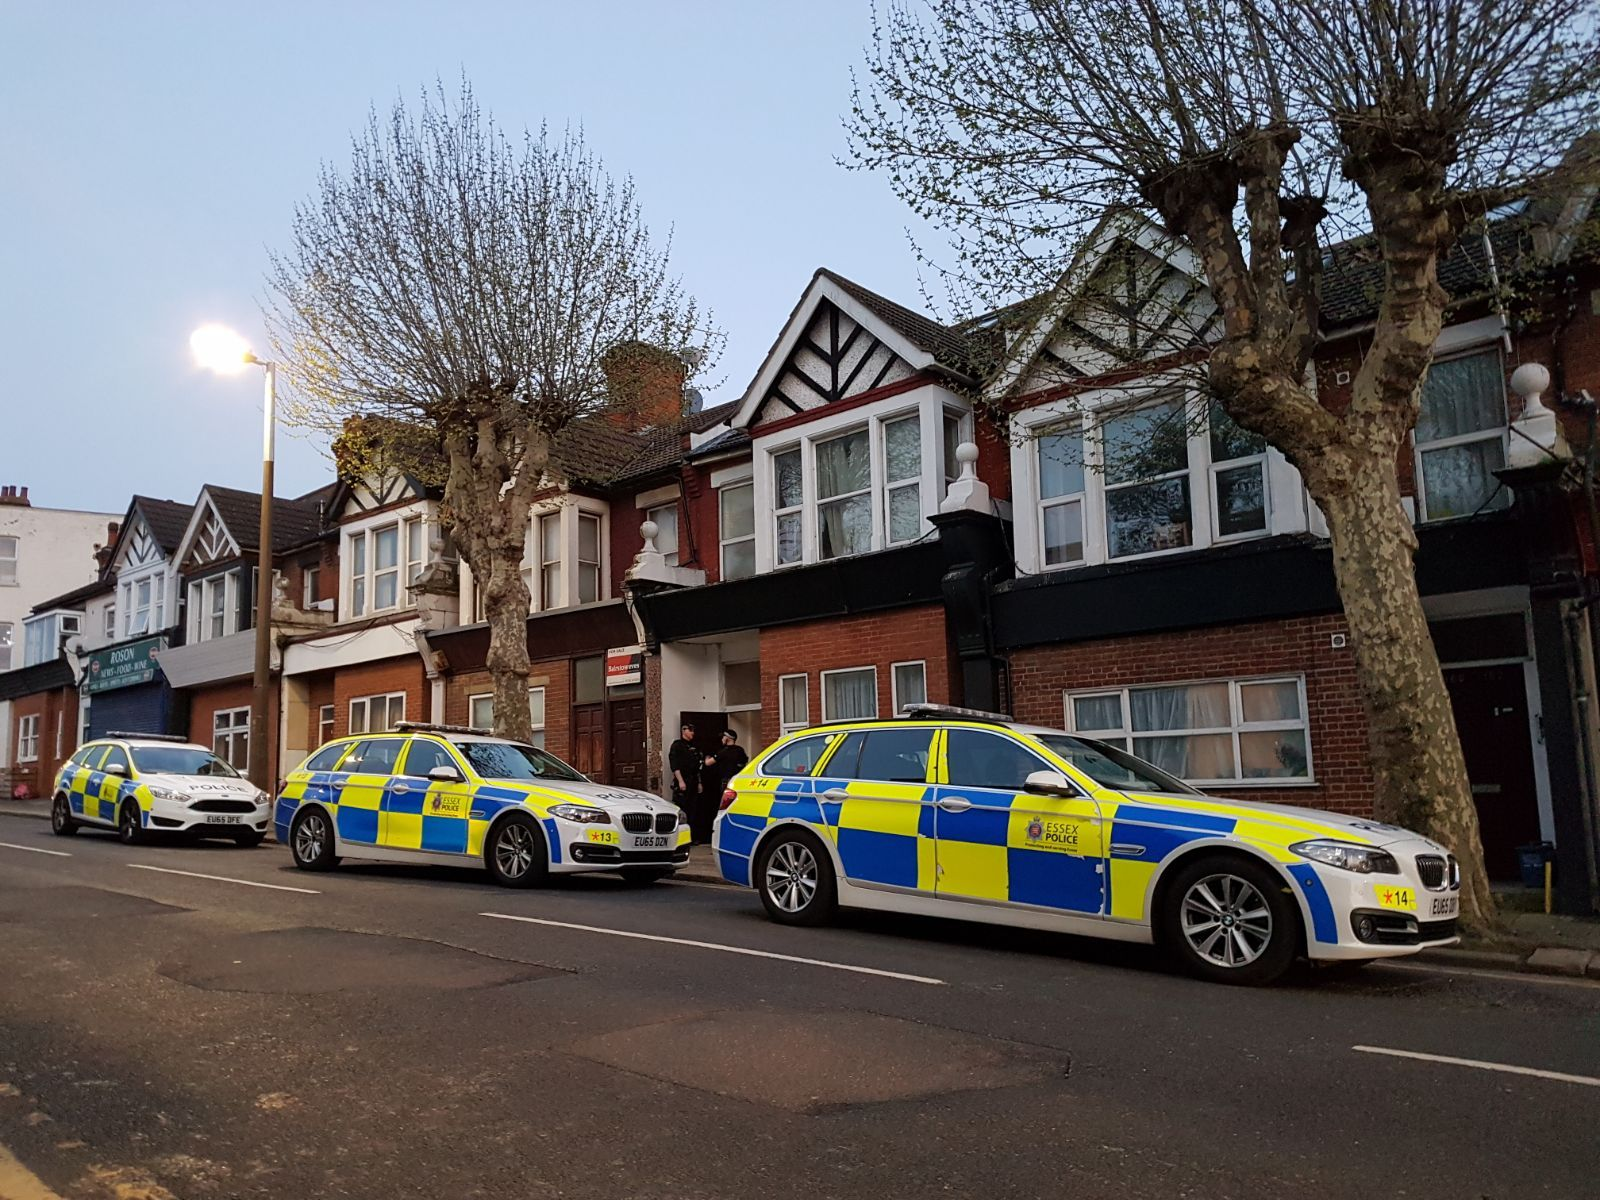 Station Road, Westcliff, armed police